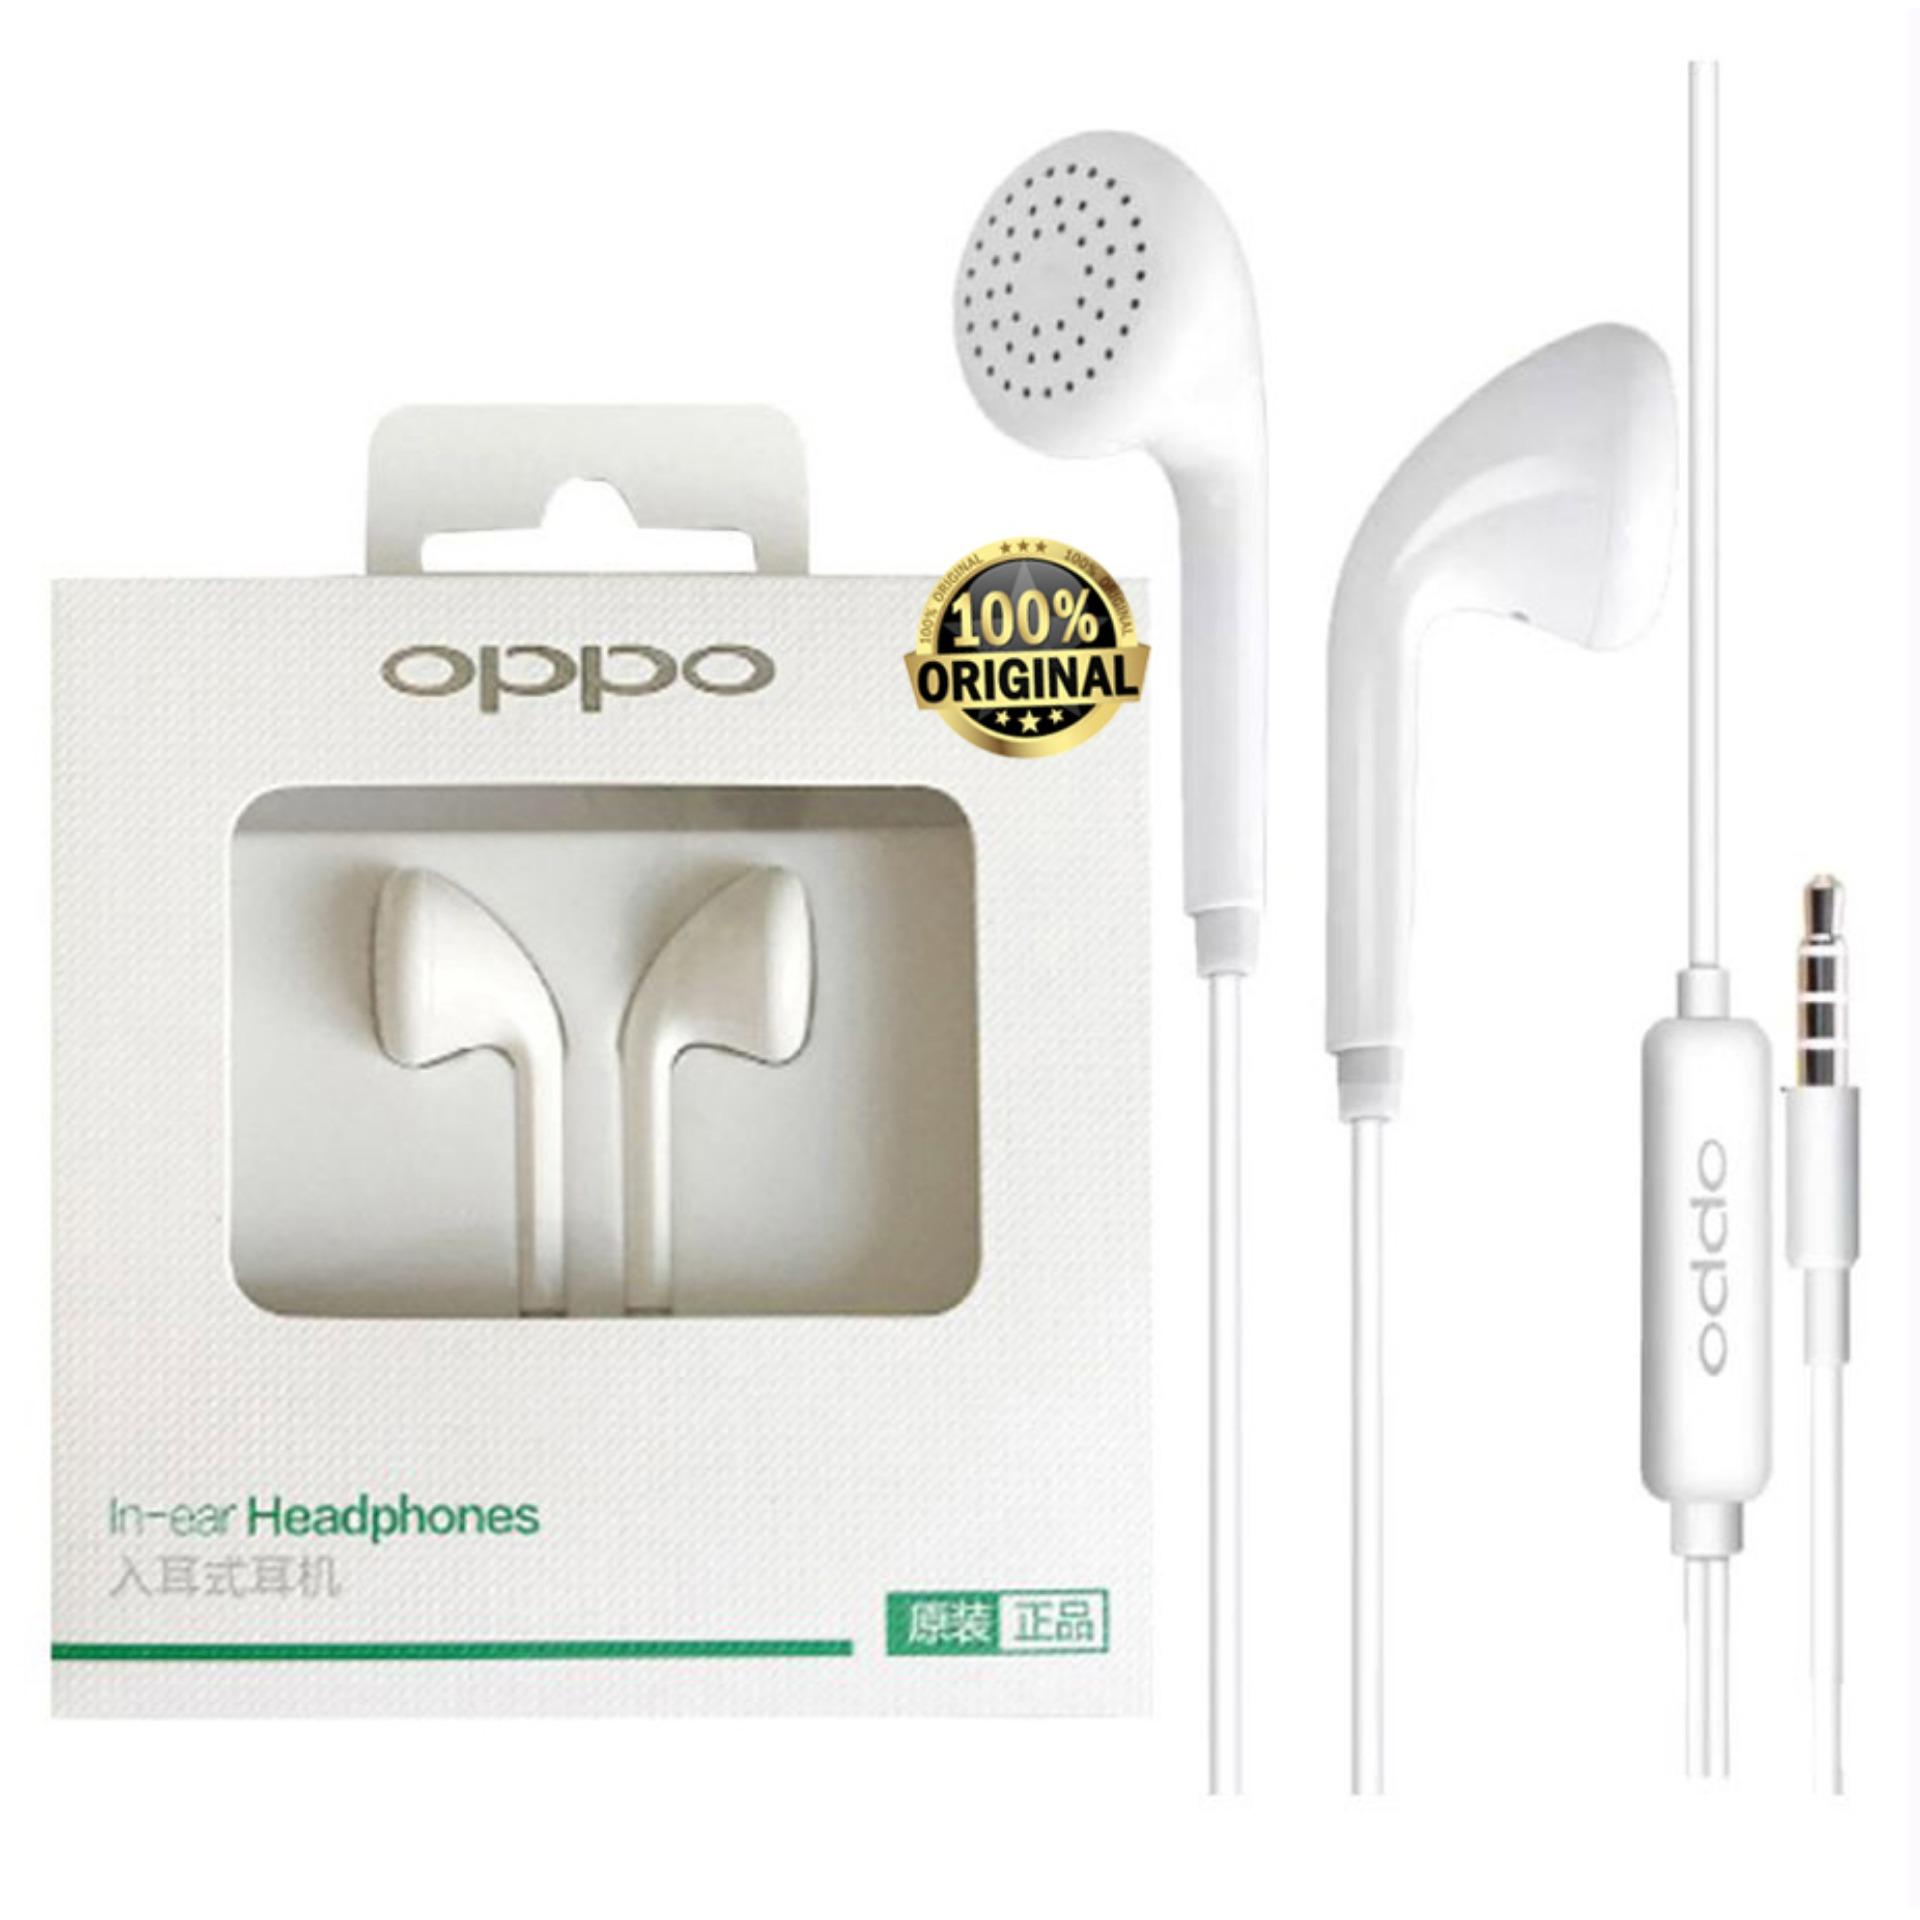 Oppo MH133 Music Smart Call Headset / Hansfree Phones Oppo F5 & F5 Youth Connected - White